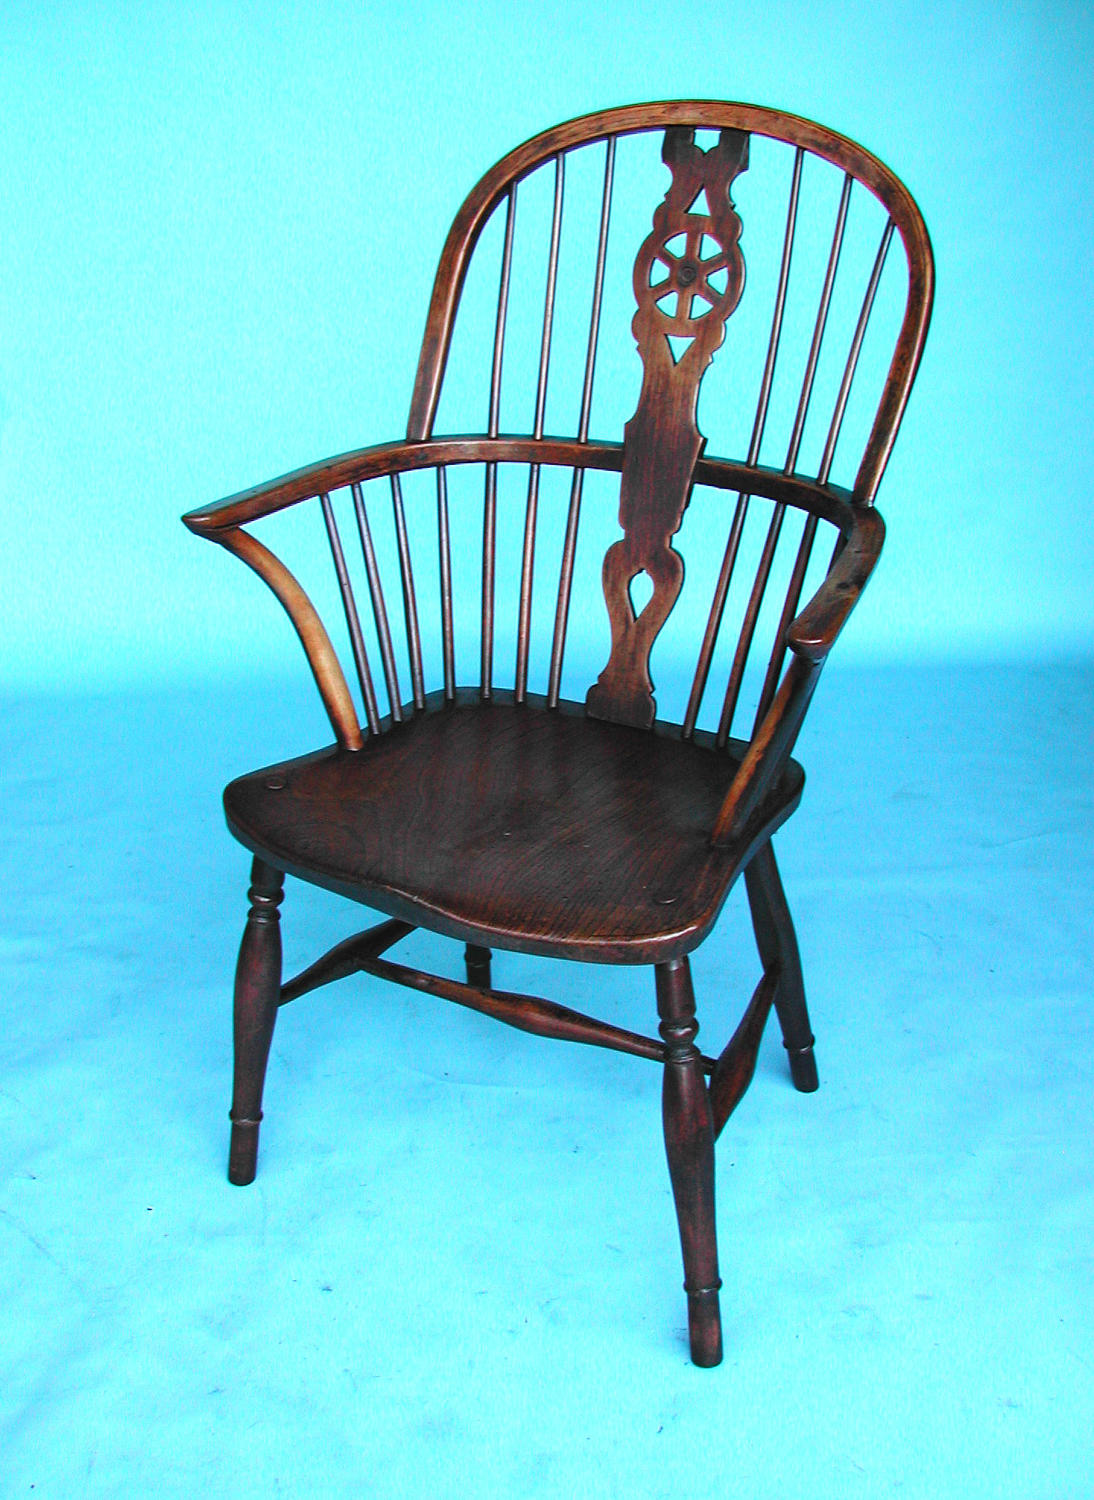 Early 19thc High Hoop Back Windsor Armchair. Buckinghamshire. C1820-40